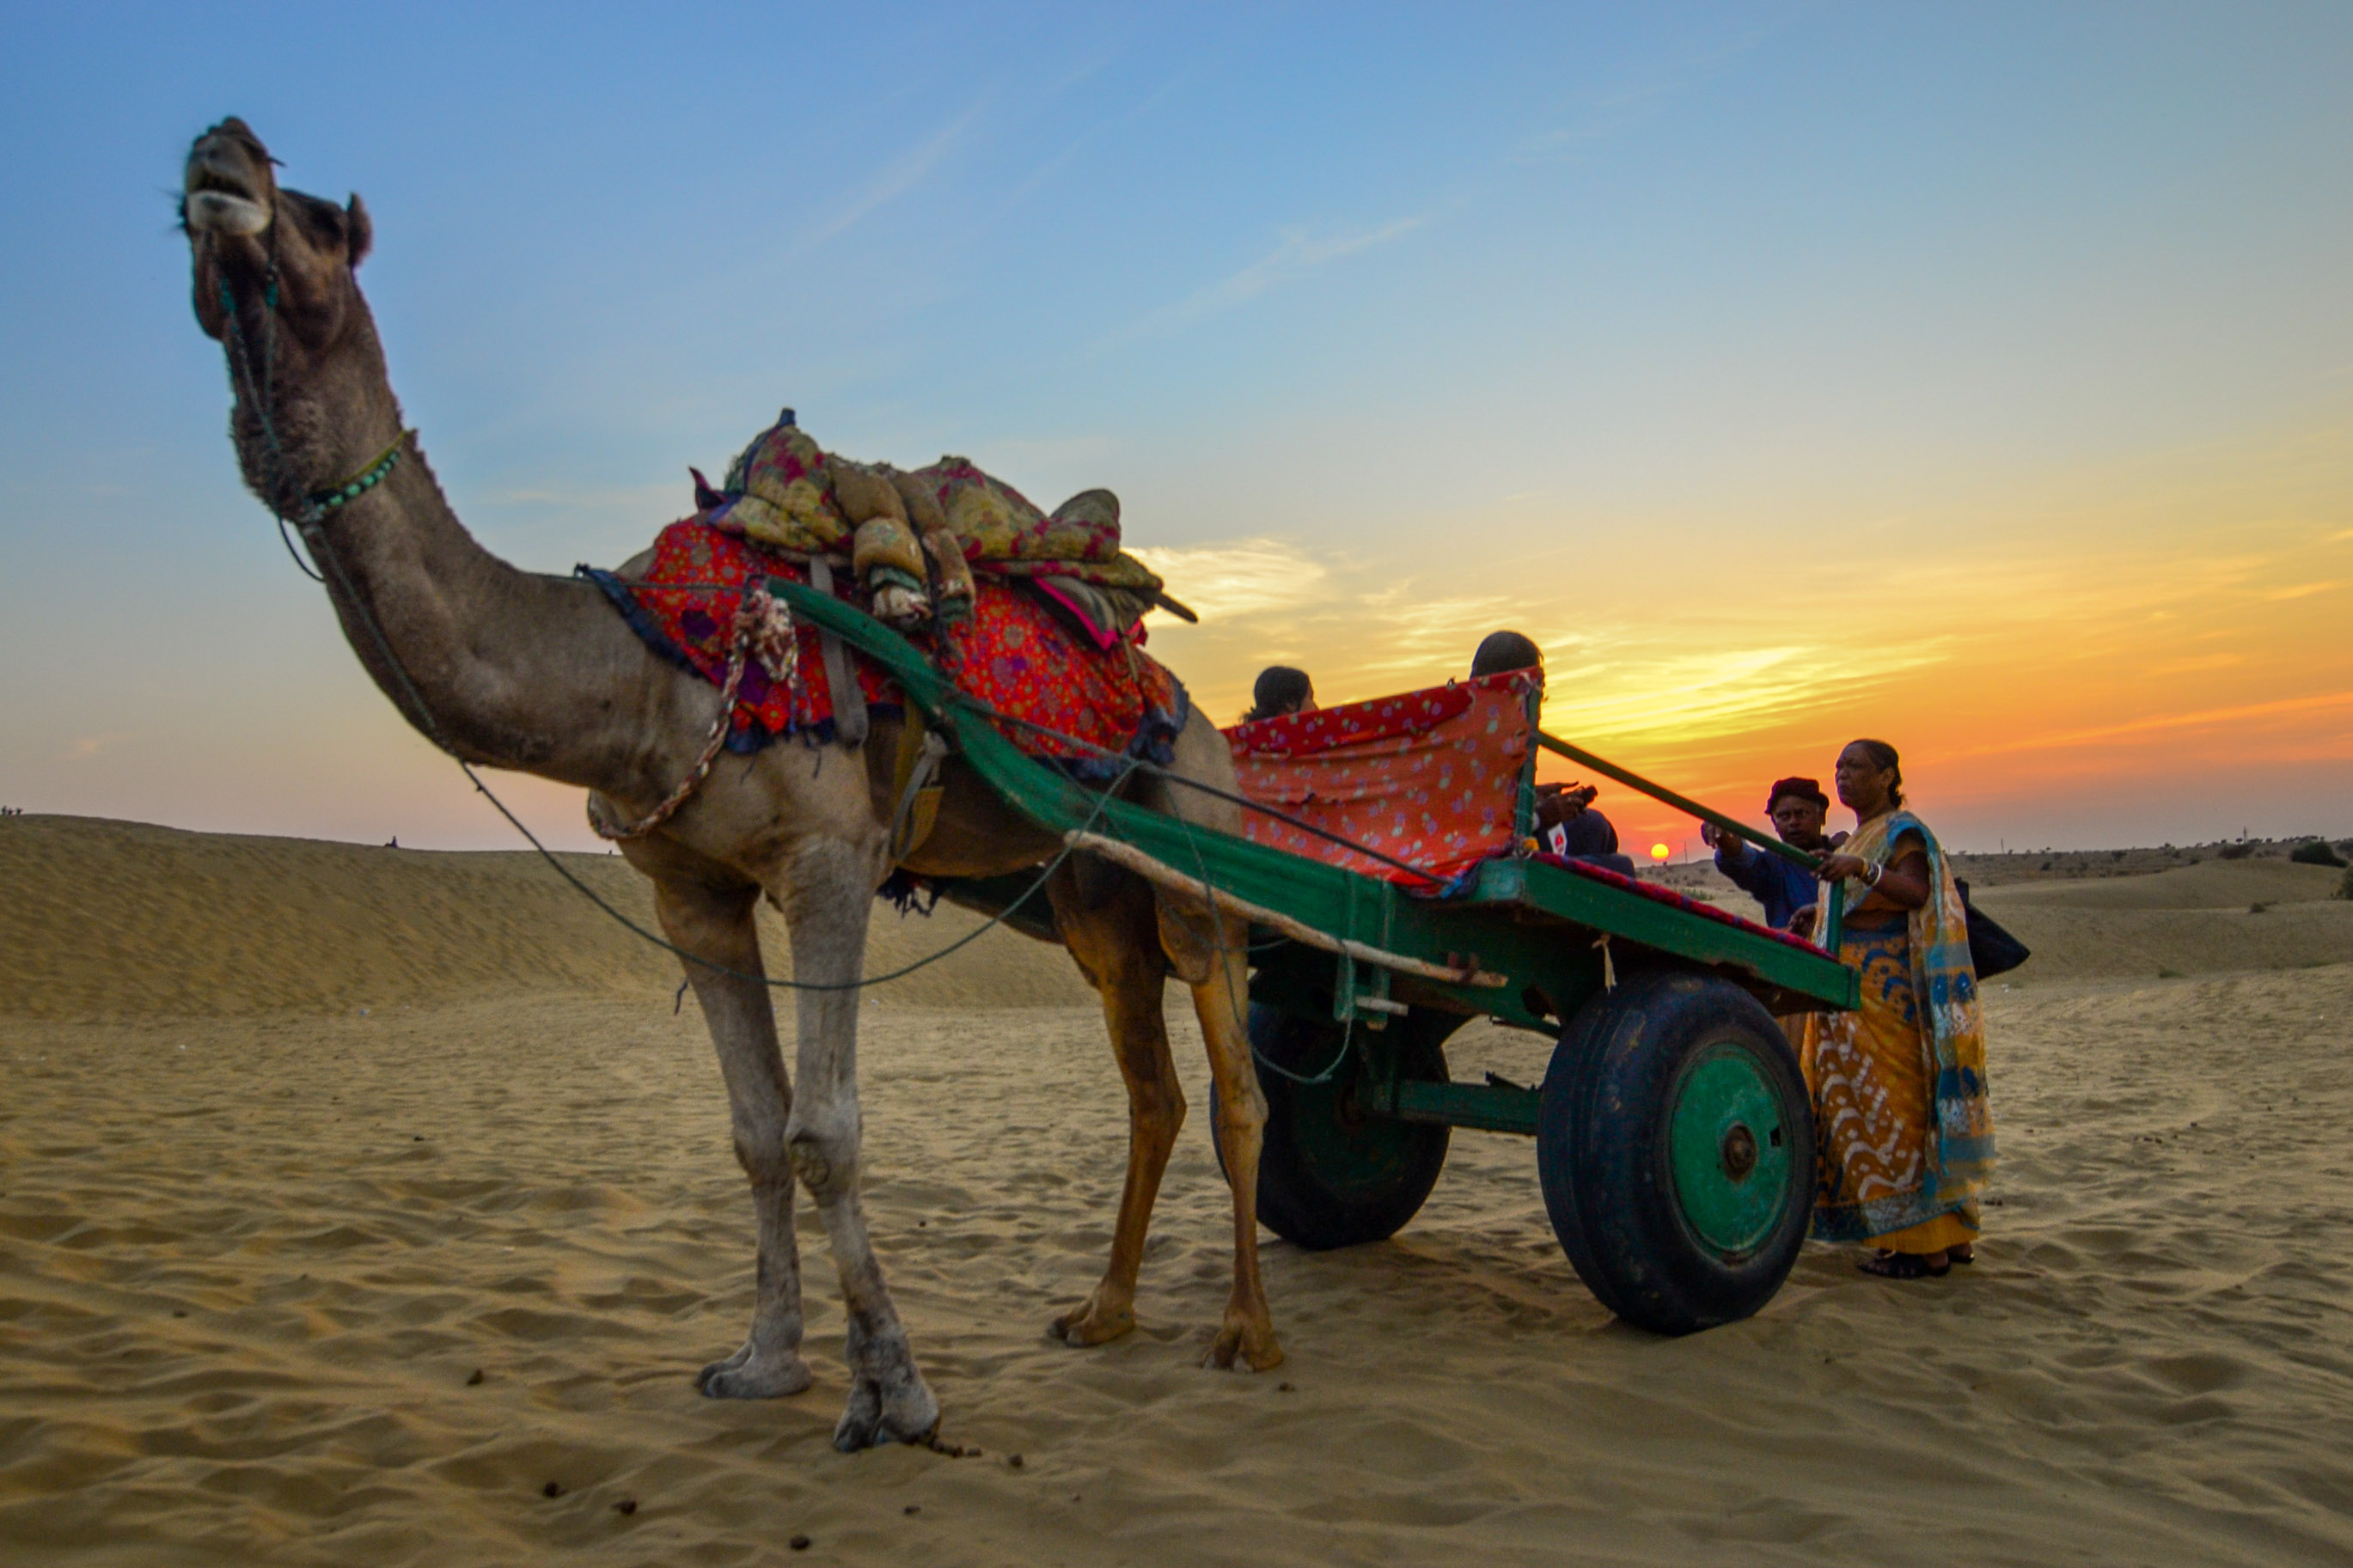 Sunset in Thar Desert – Jaisalmer, Rajasthan, India